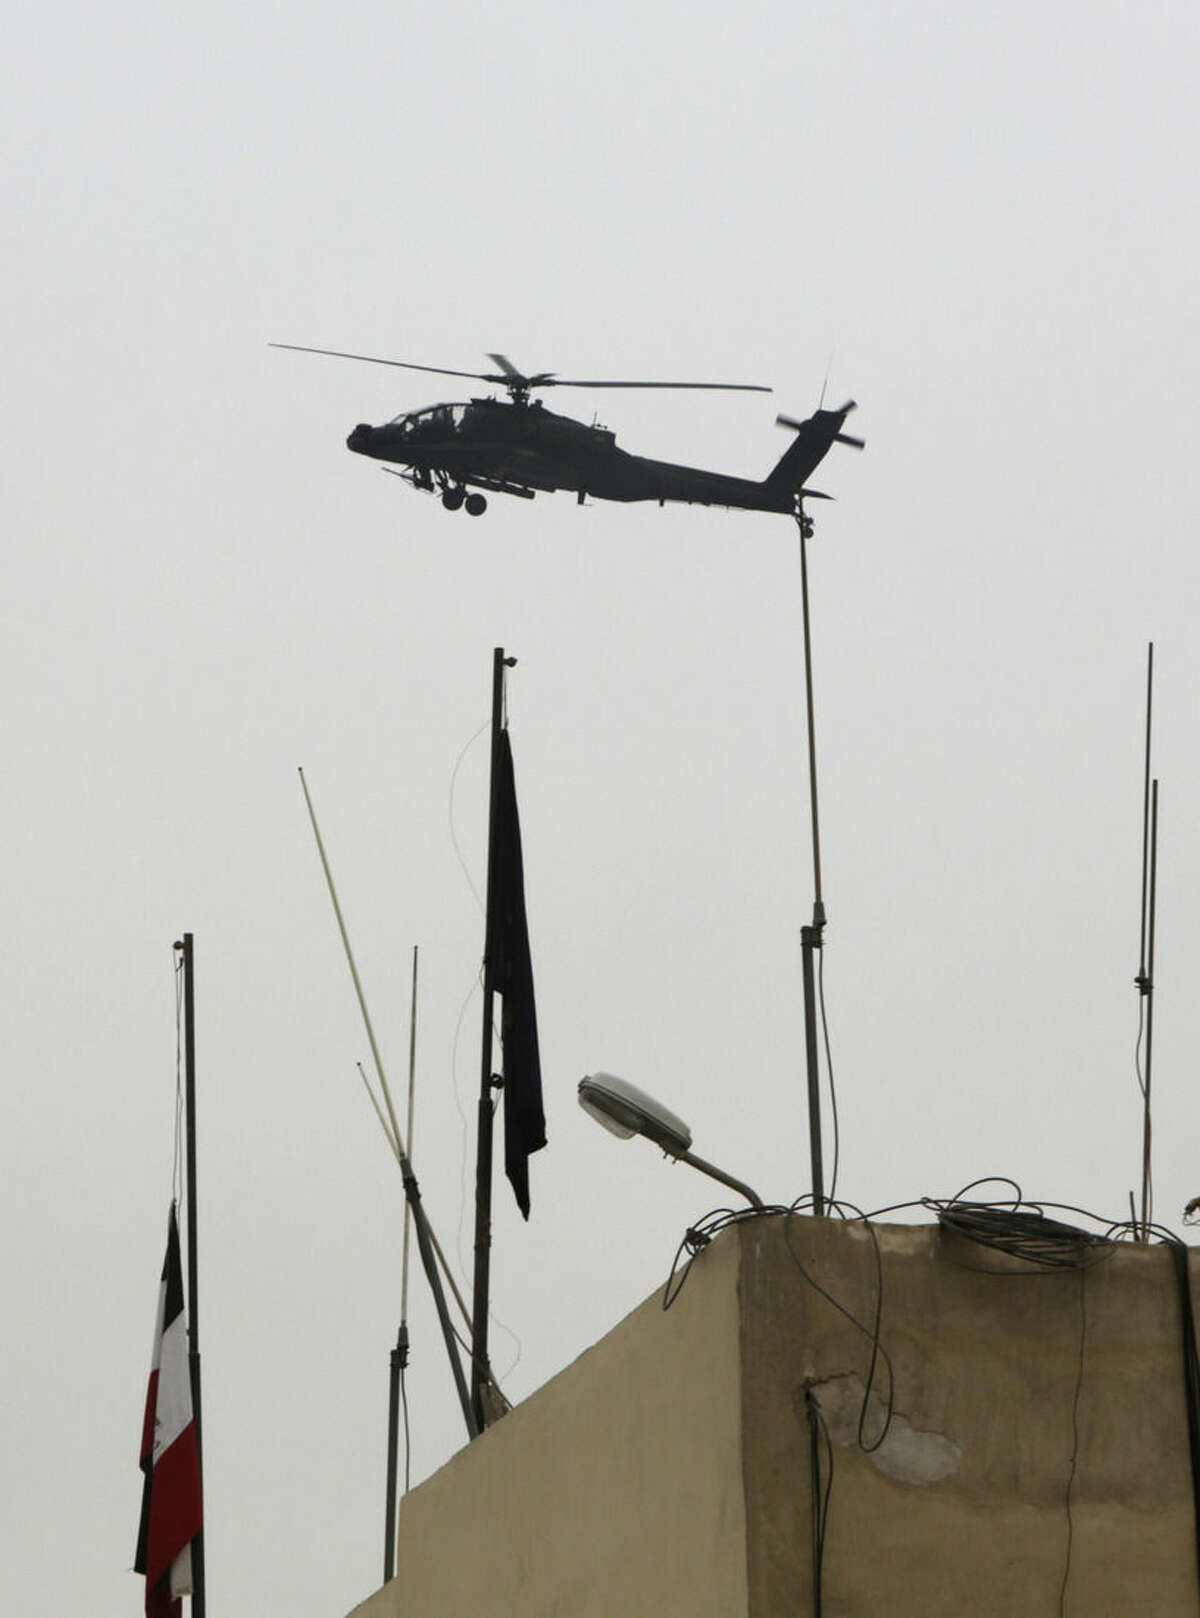 An Egyptian military helicopter flies over Tora prison in Cairo, Egypt, Monday, Feb. 23, 2015. An Egyptian court sentenced Alaa Abd el-Fattah, an icon of the country's 2011 revolt to five years in prison Monday, showing authorities' determination to continue to stifle dissent despite promises by its president to release